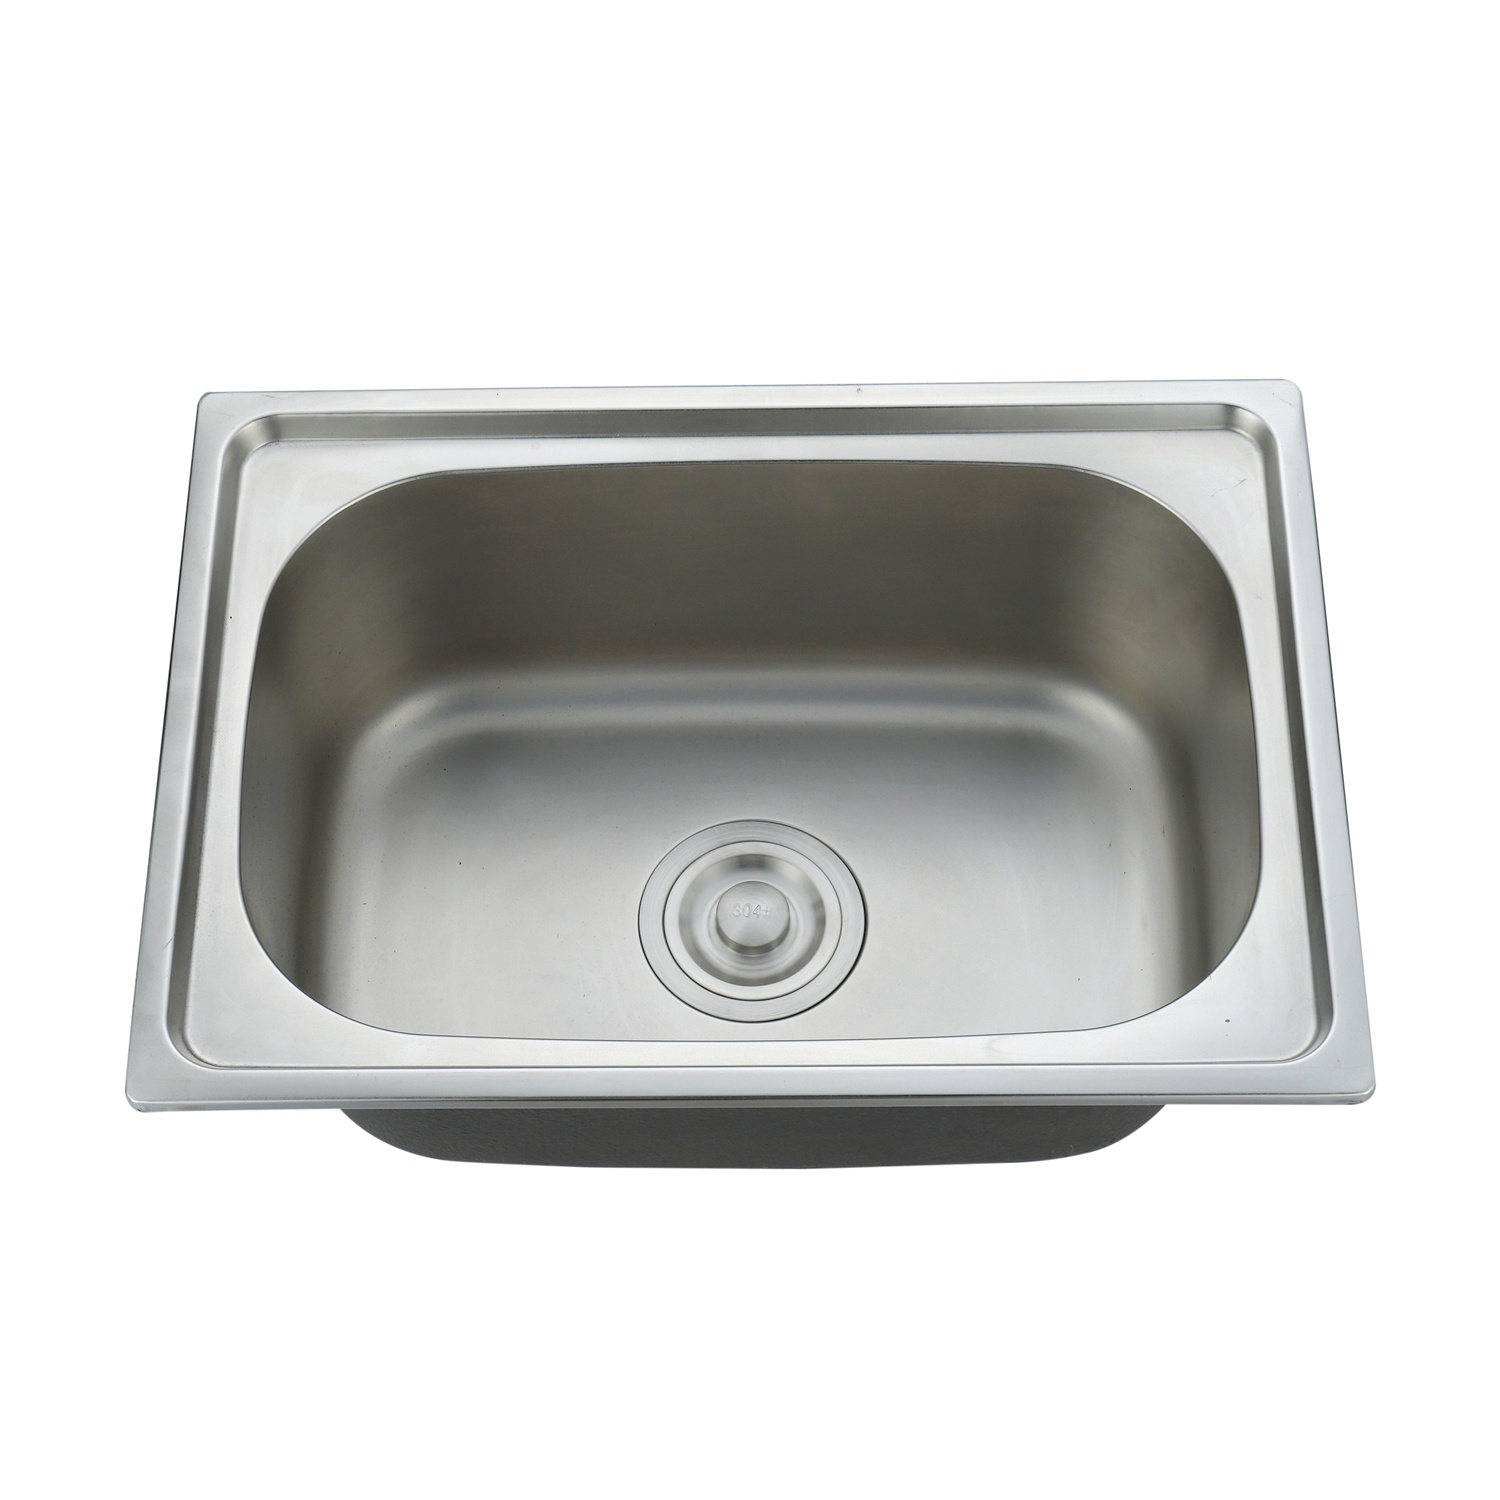 China Hot Sale Project Single Stainless Steel Kitchen Sink Ls 5544 China Washing Sink Single Kitchen Sink